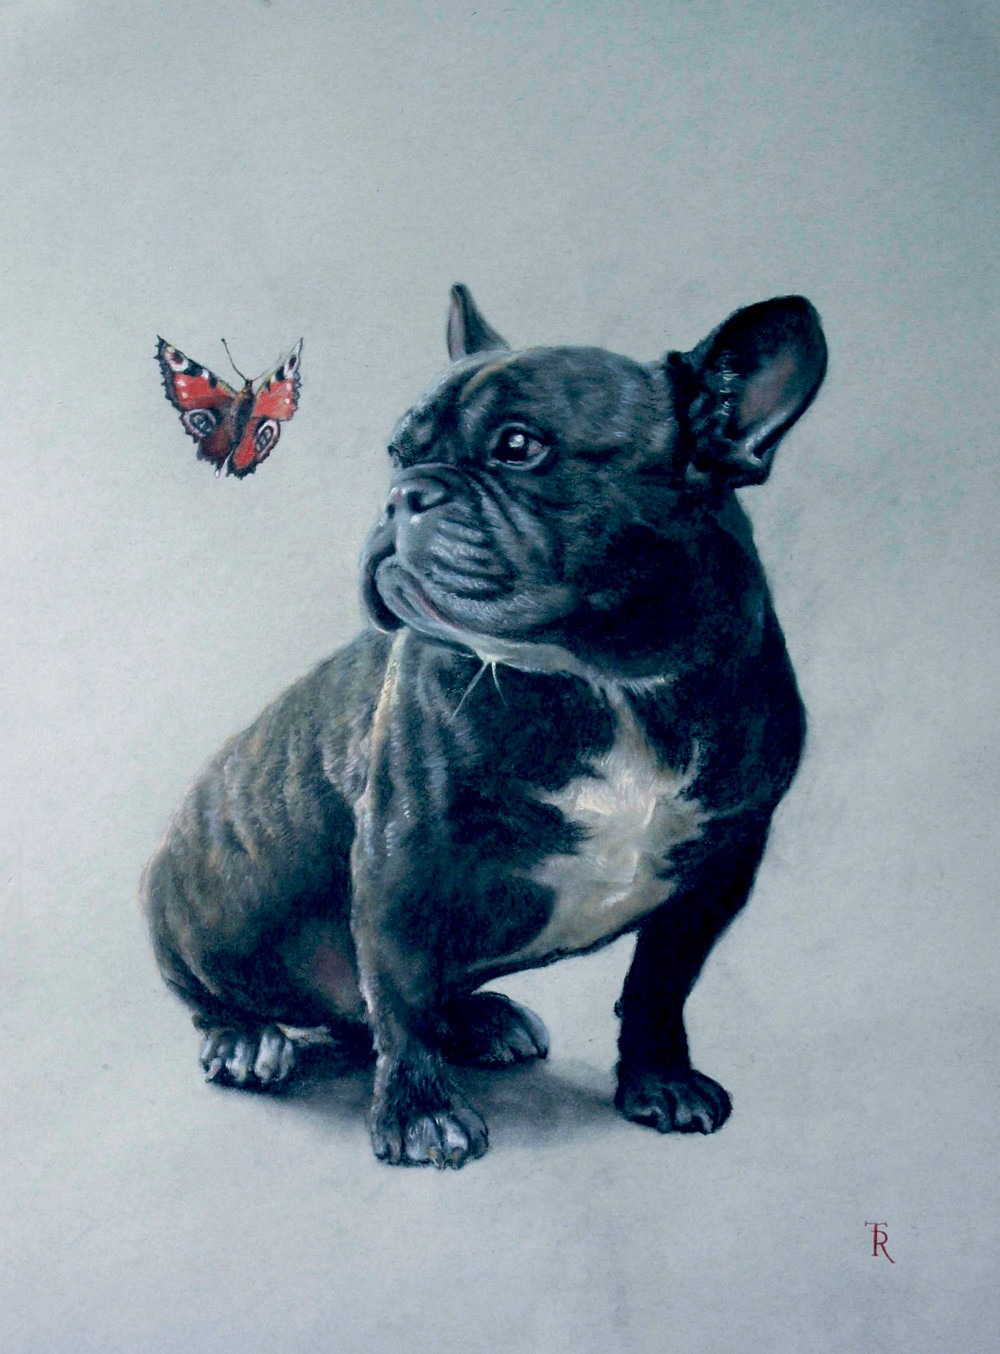 Arnold and the butterfly, Oil on Canvas. Beautiful portrait of a funny bulldog